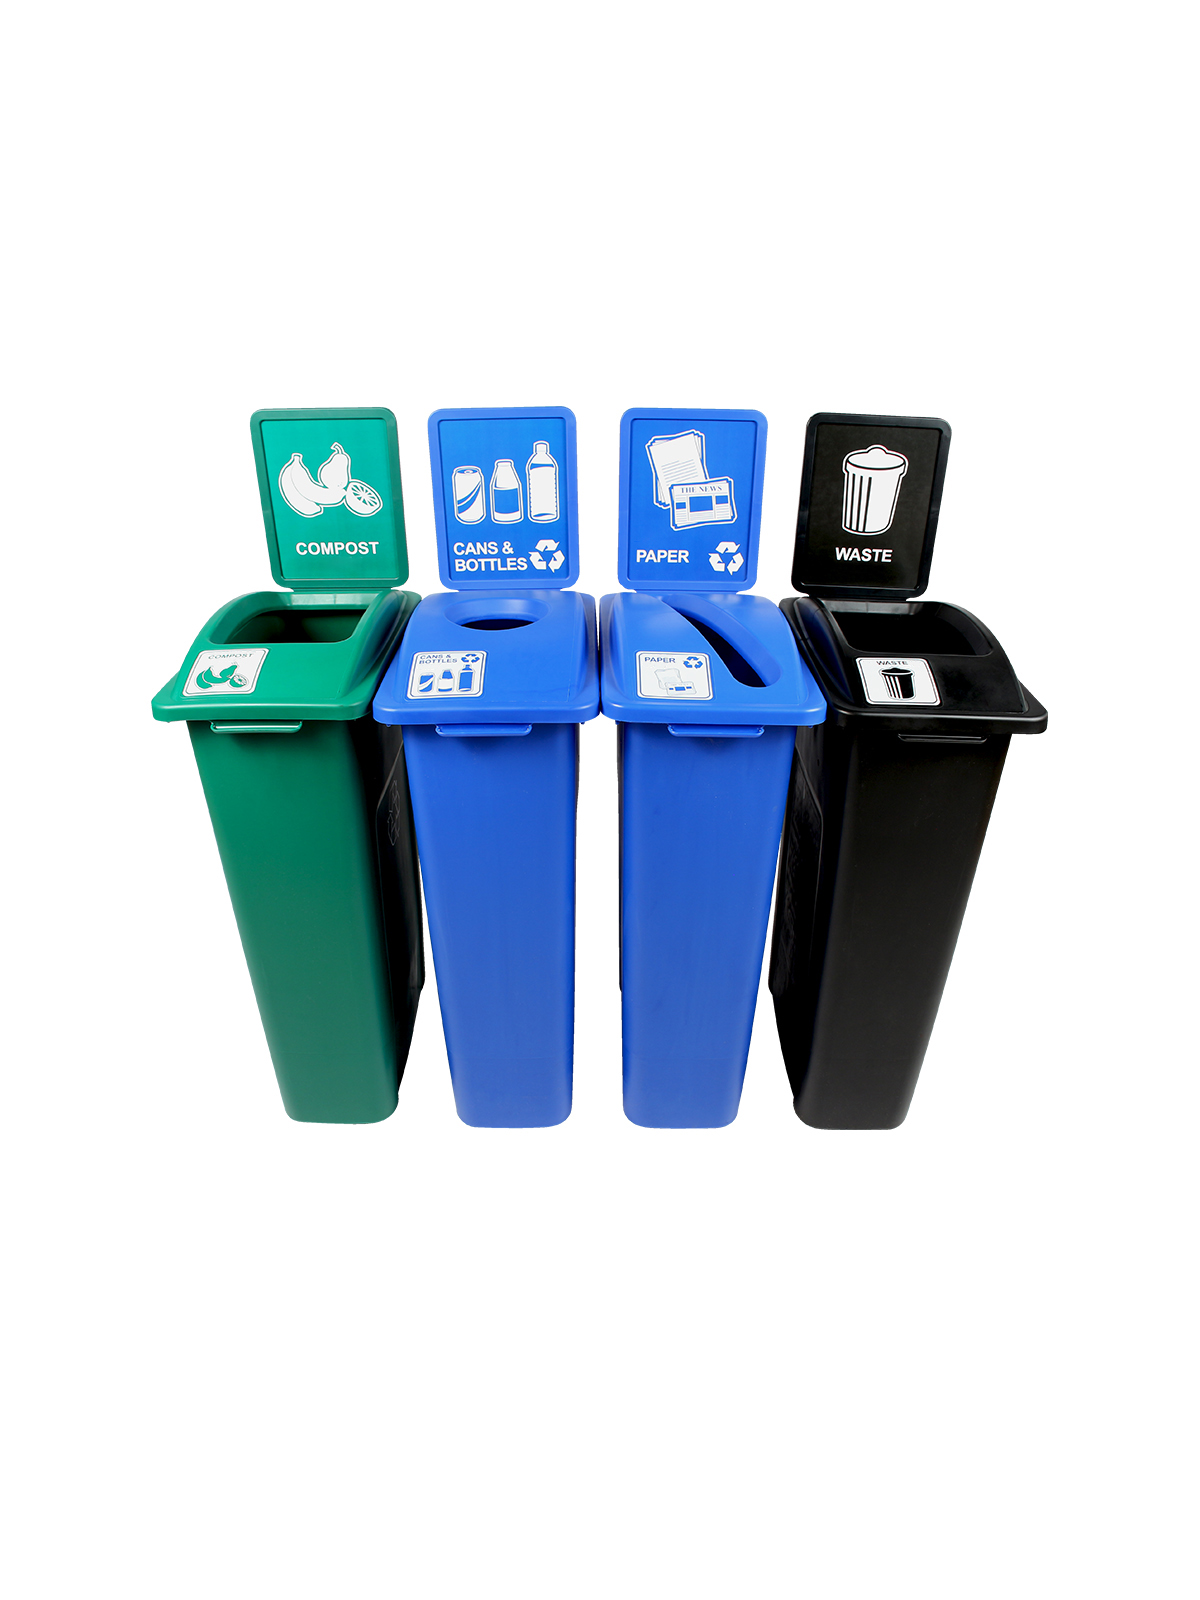 WASTE WATCHER - Quad - Cans & Bottles-Paper-Compost-Waste - Circle-Slot-Full - Blue-Blue-Green-Black